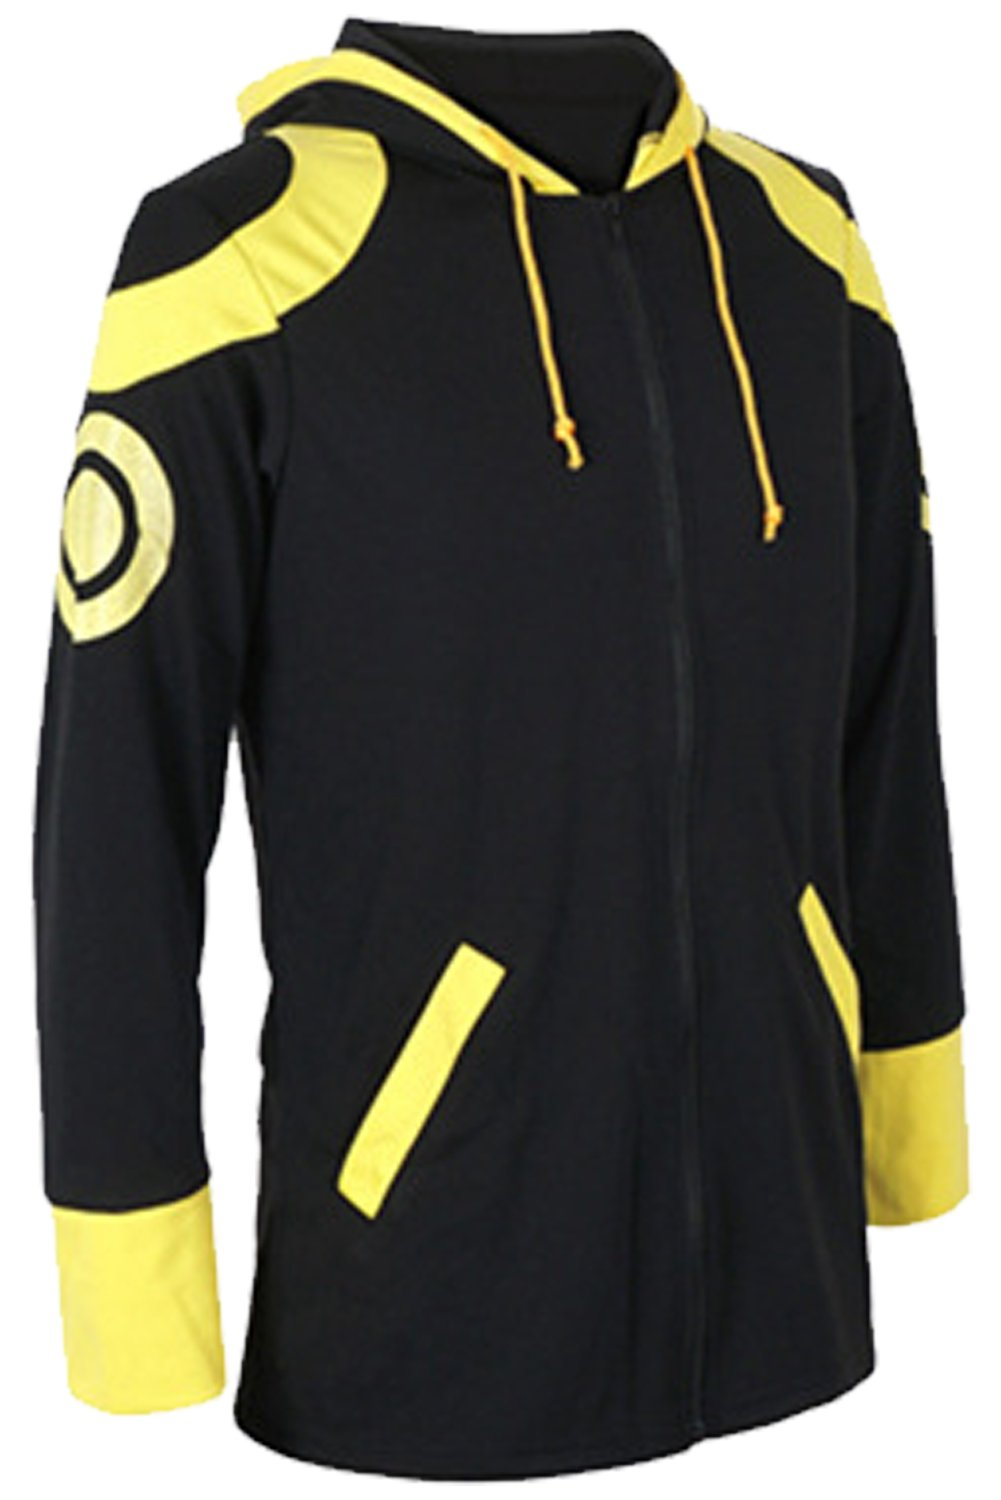 Costhat Casual Mystic Messenger 707 Extreme Luciel Choi Jacket Hoodie by Costhat (Image #4)